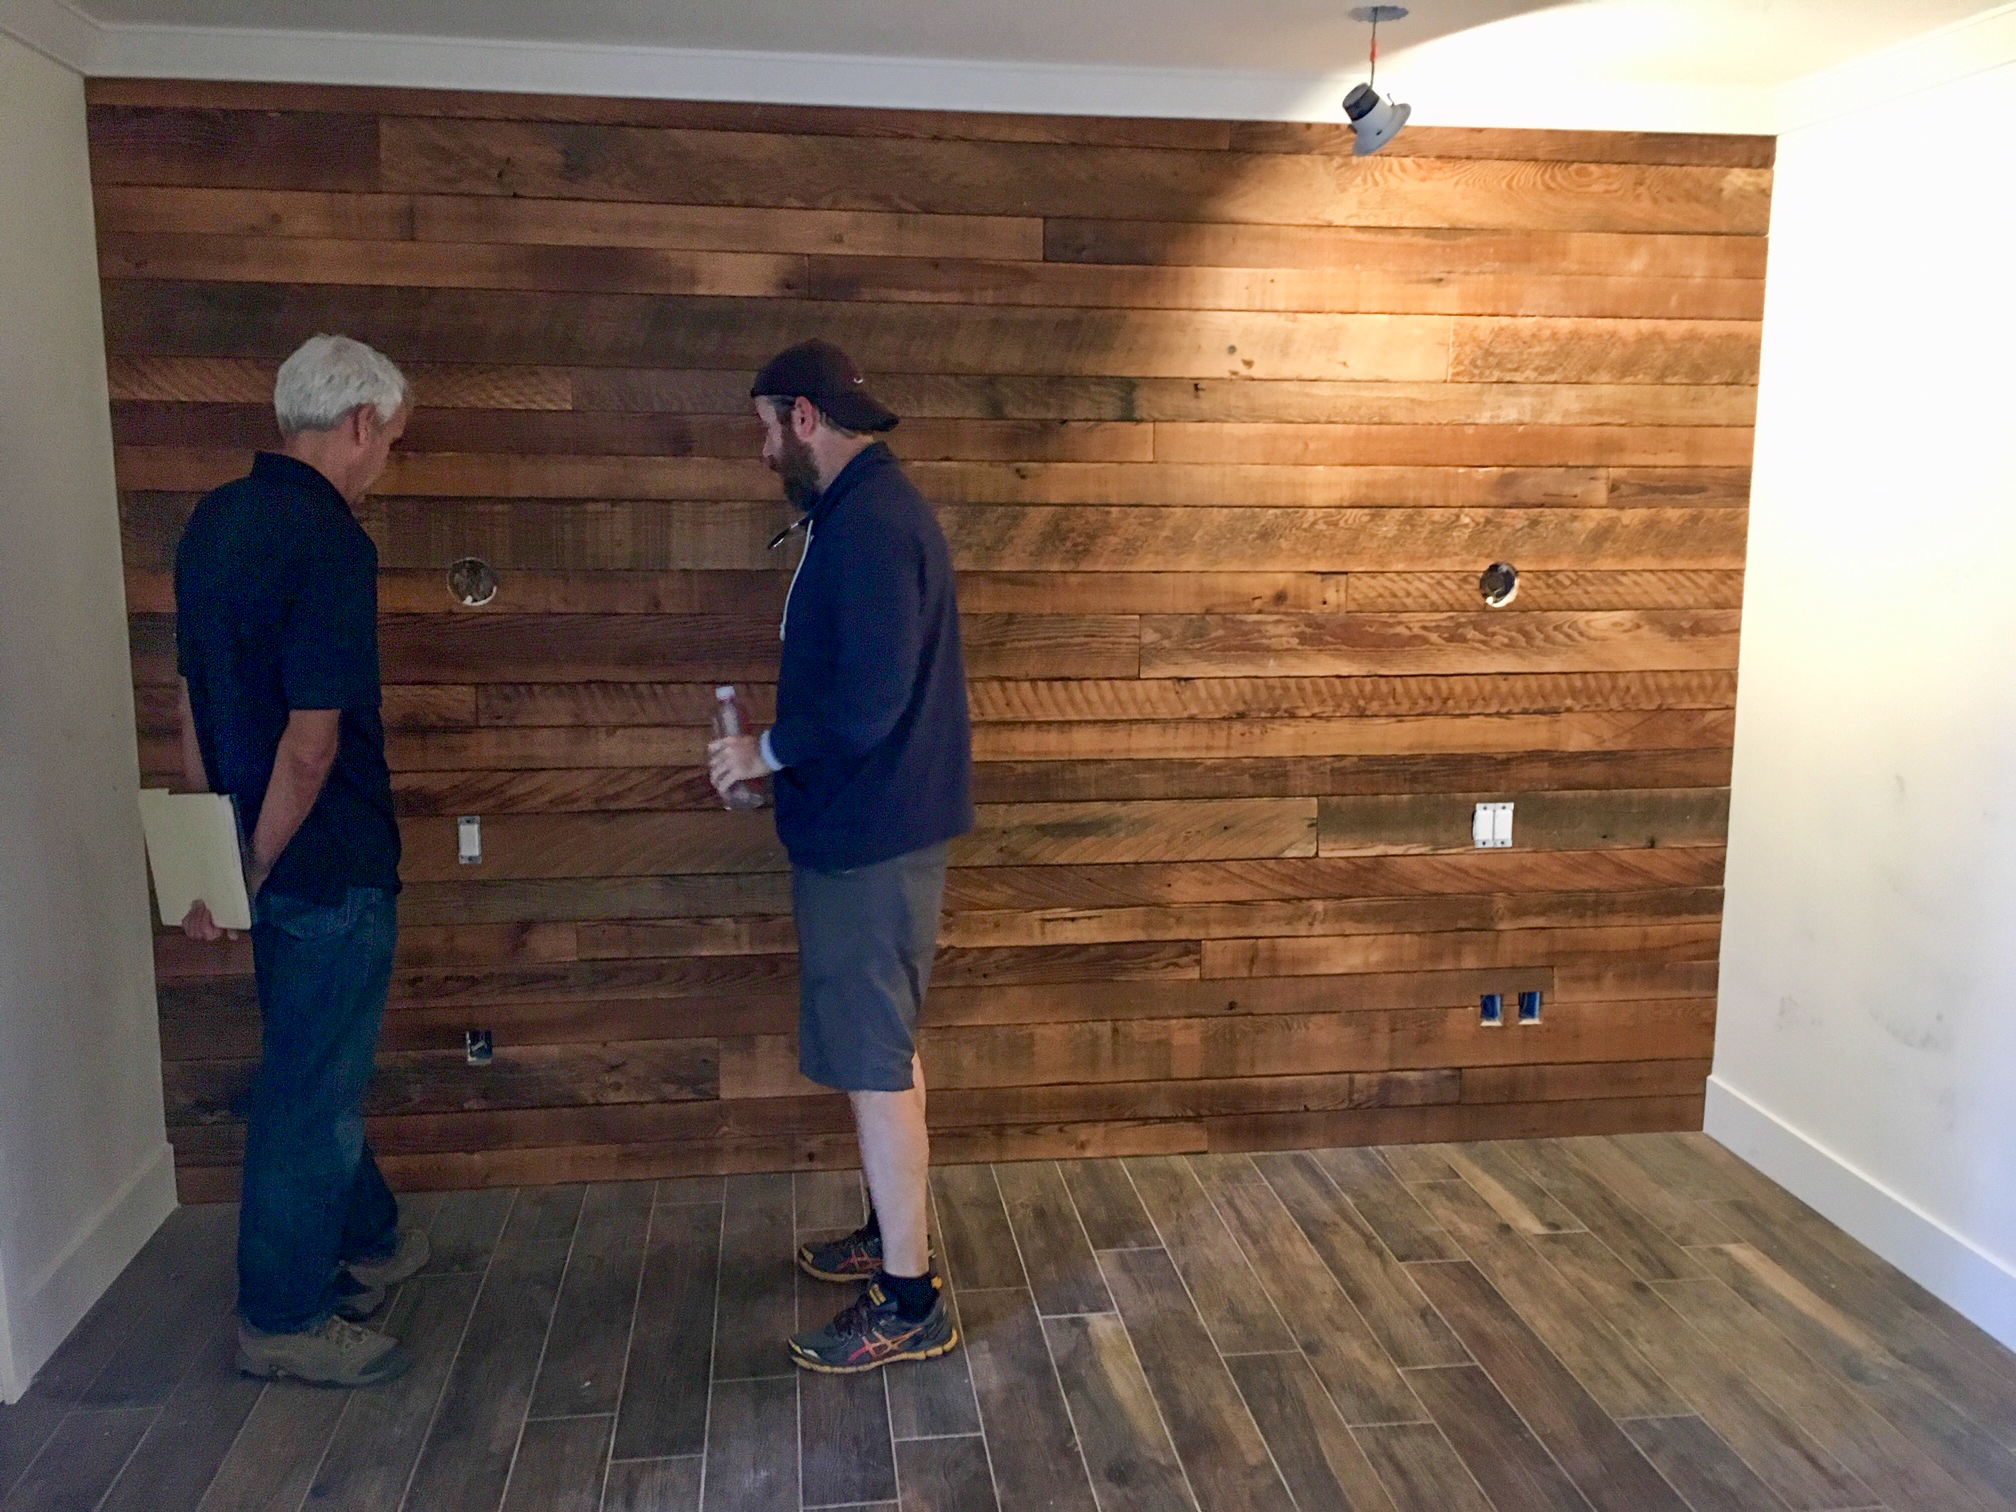 "This is the project manager and client in his new bedroom in San Diego... Guys, check out this combo of finishes. 😍 Durable, wood look-alike floor tiles with a real reclaimed wood wall. The wall will serve as the ""headboard"". 🛏 Can't wait to see it with the wall sconces, panel bed, and new rugs. This place is gonna be lookin' goooood. 😁  Need help with the finishes in your home? Message me! 👋🏻  Also, if you're looking for a project manager in SD, message me. Ed Earl is amazing. 🙌🏻 Seriously."